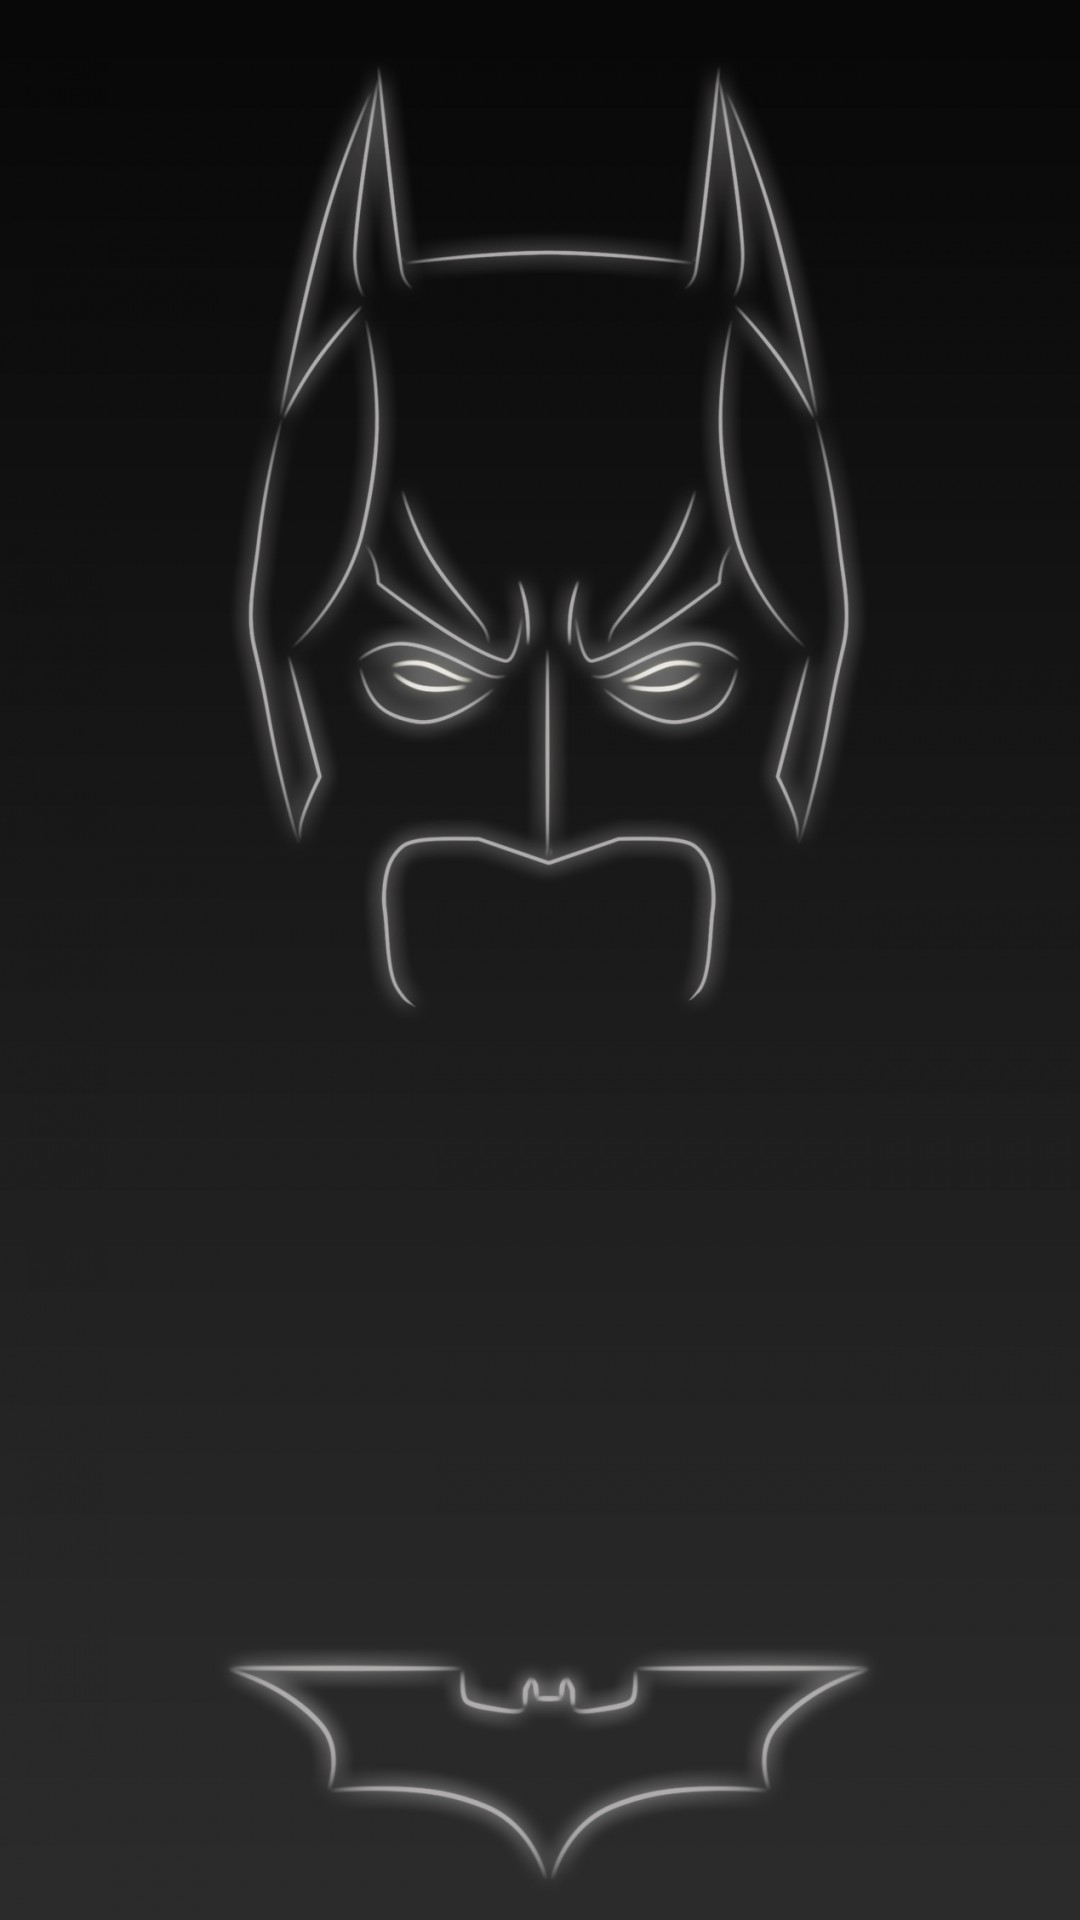 Superhero Iphone Wallpapers 84 Images